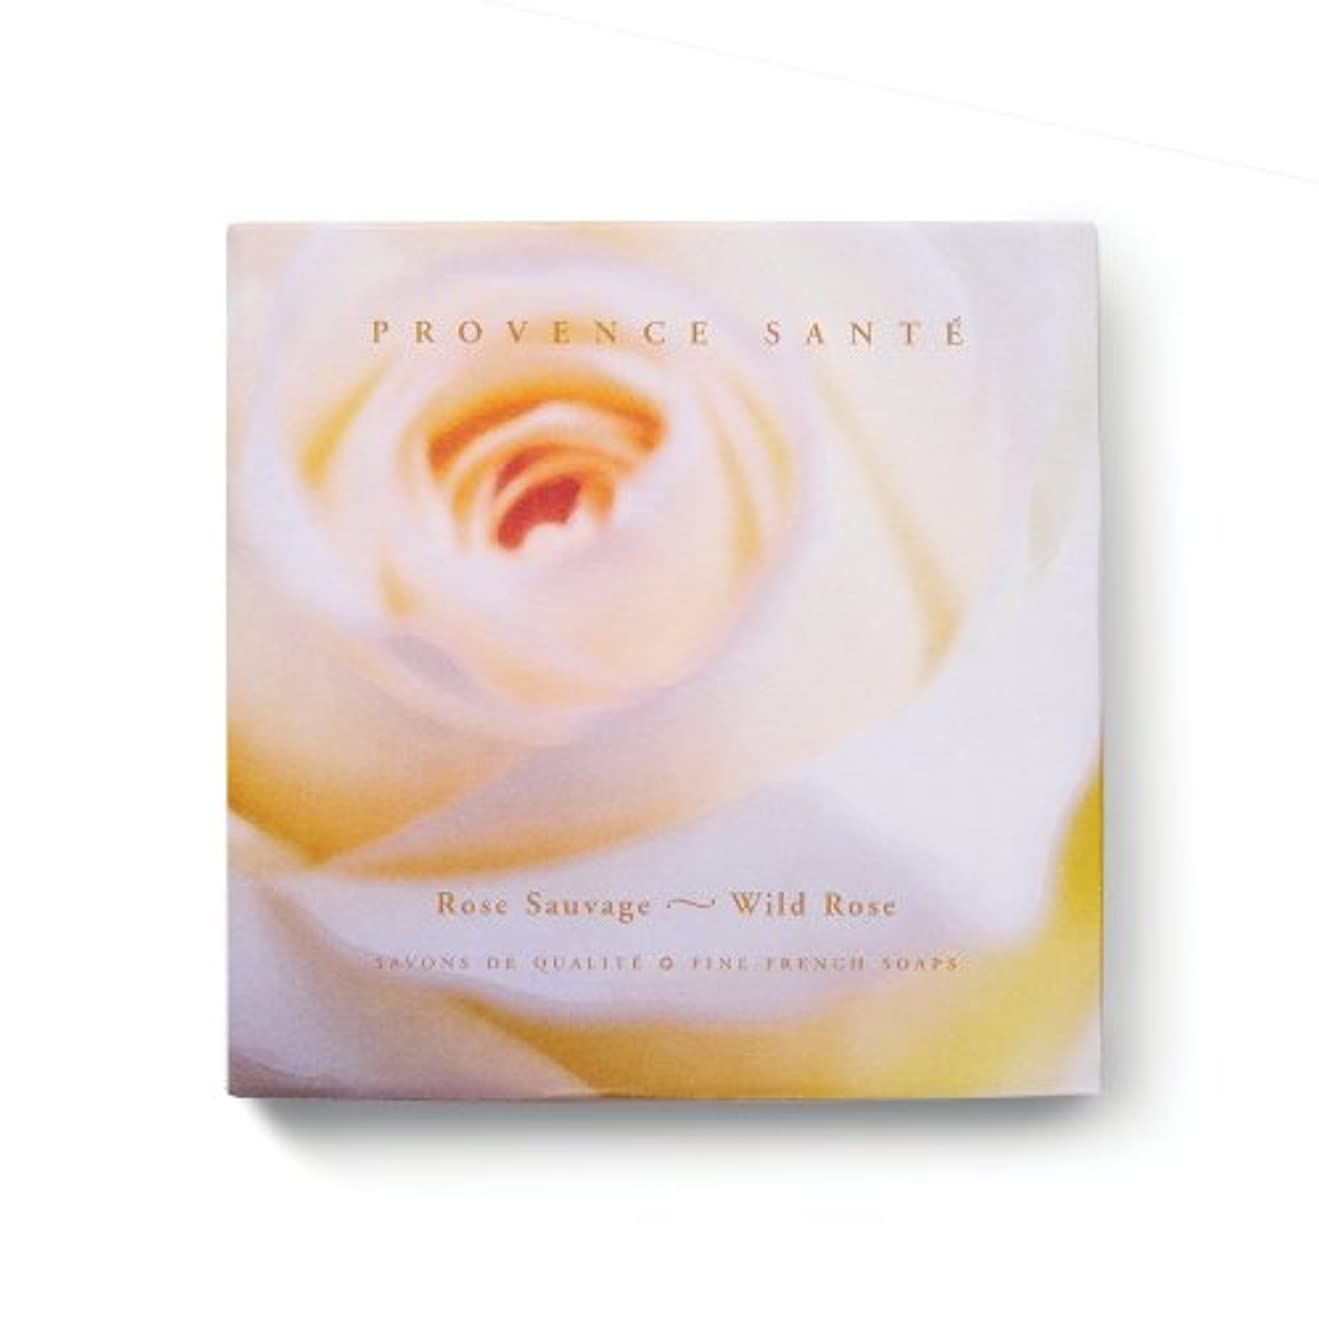 いらいらさせる渦無駄Provence Sante PS Gift Soap Wild Rose, 2.7oz 4 Bar Gift Box by Provence Sante [並行輸入品]